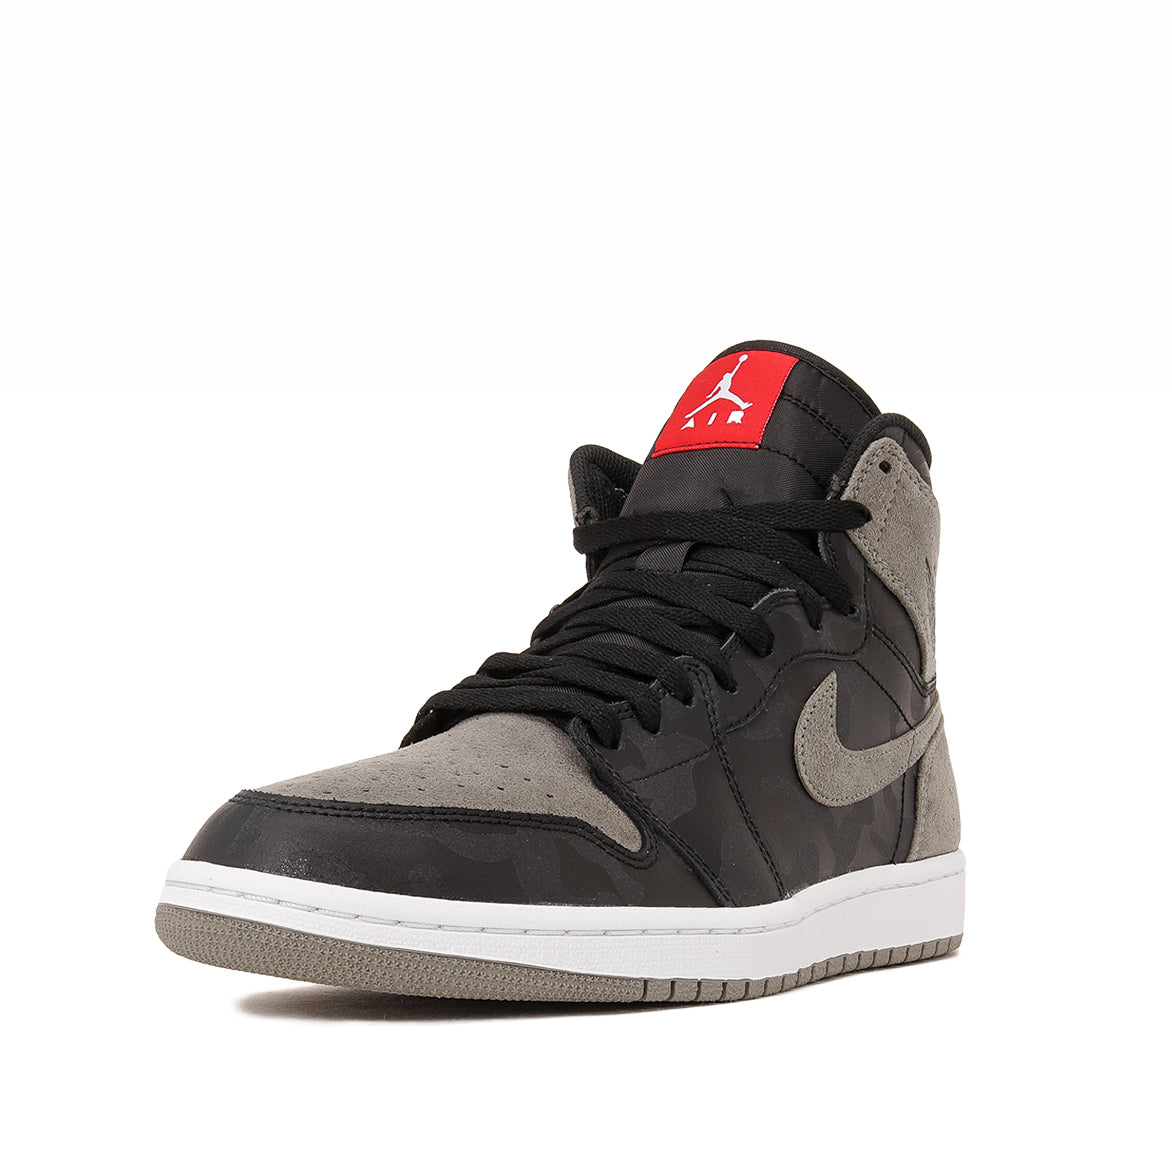 "AIR JORDAN 1 RETRO HIGH PREMIUM ""SHADOW CAMO"""